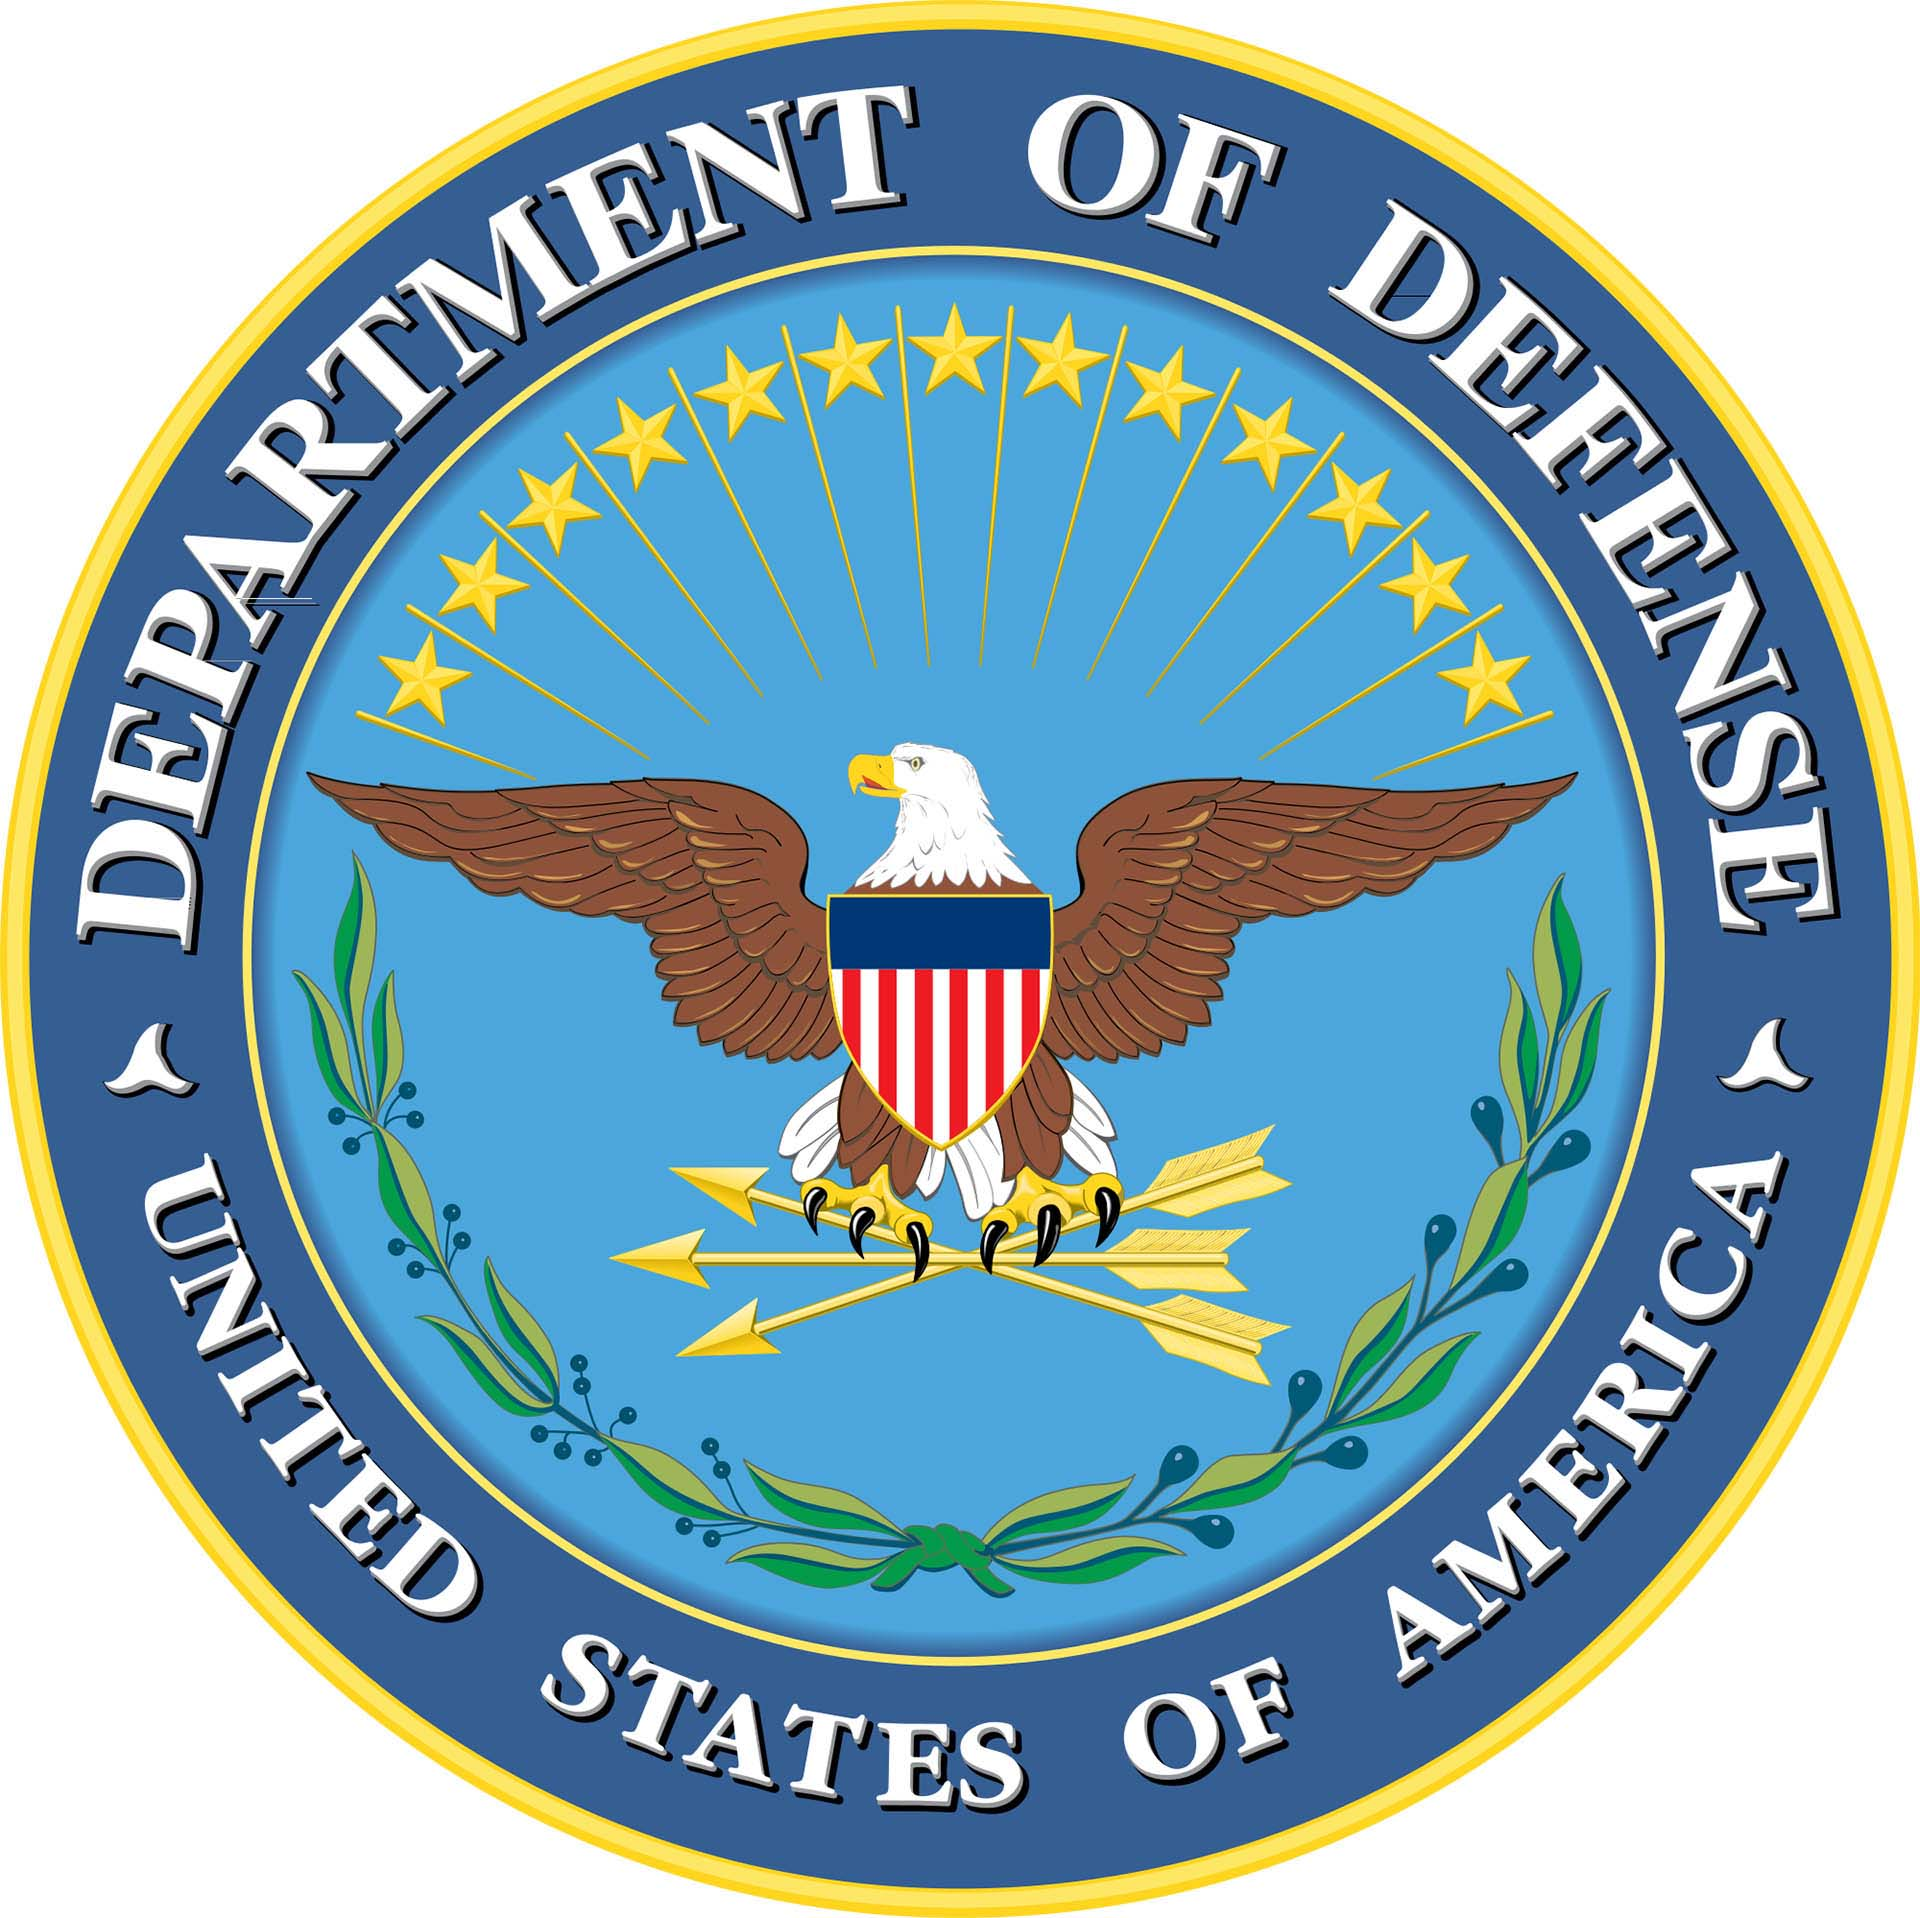 U.S. Department of Defens